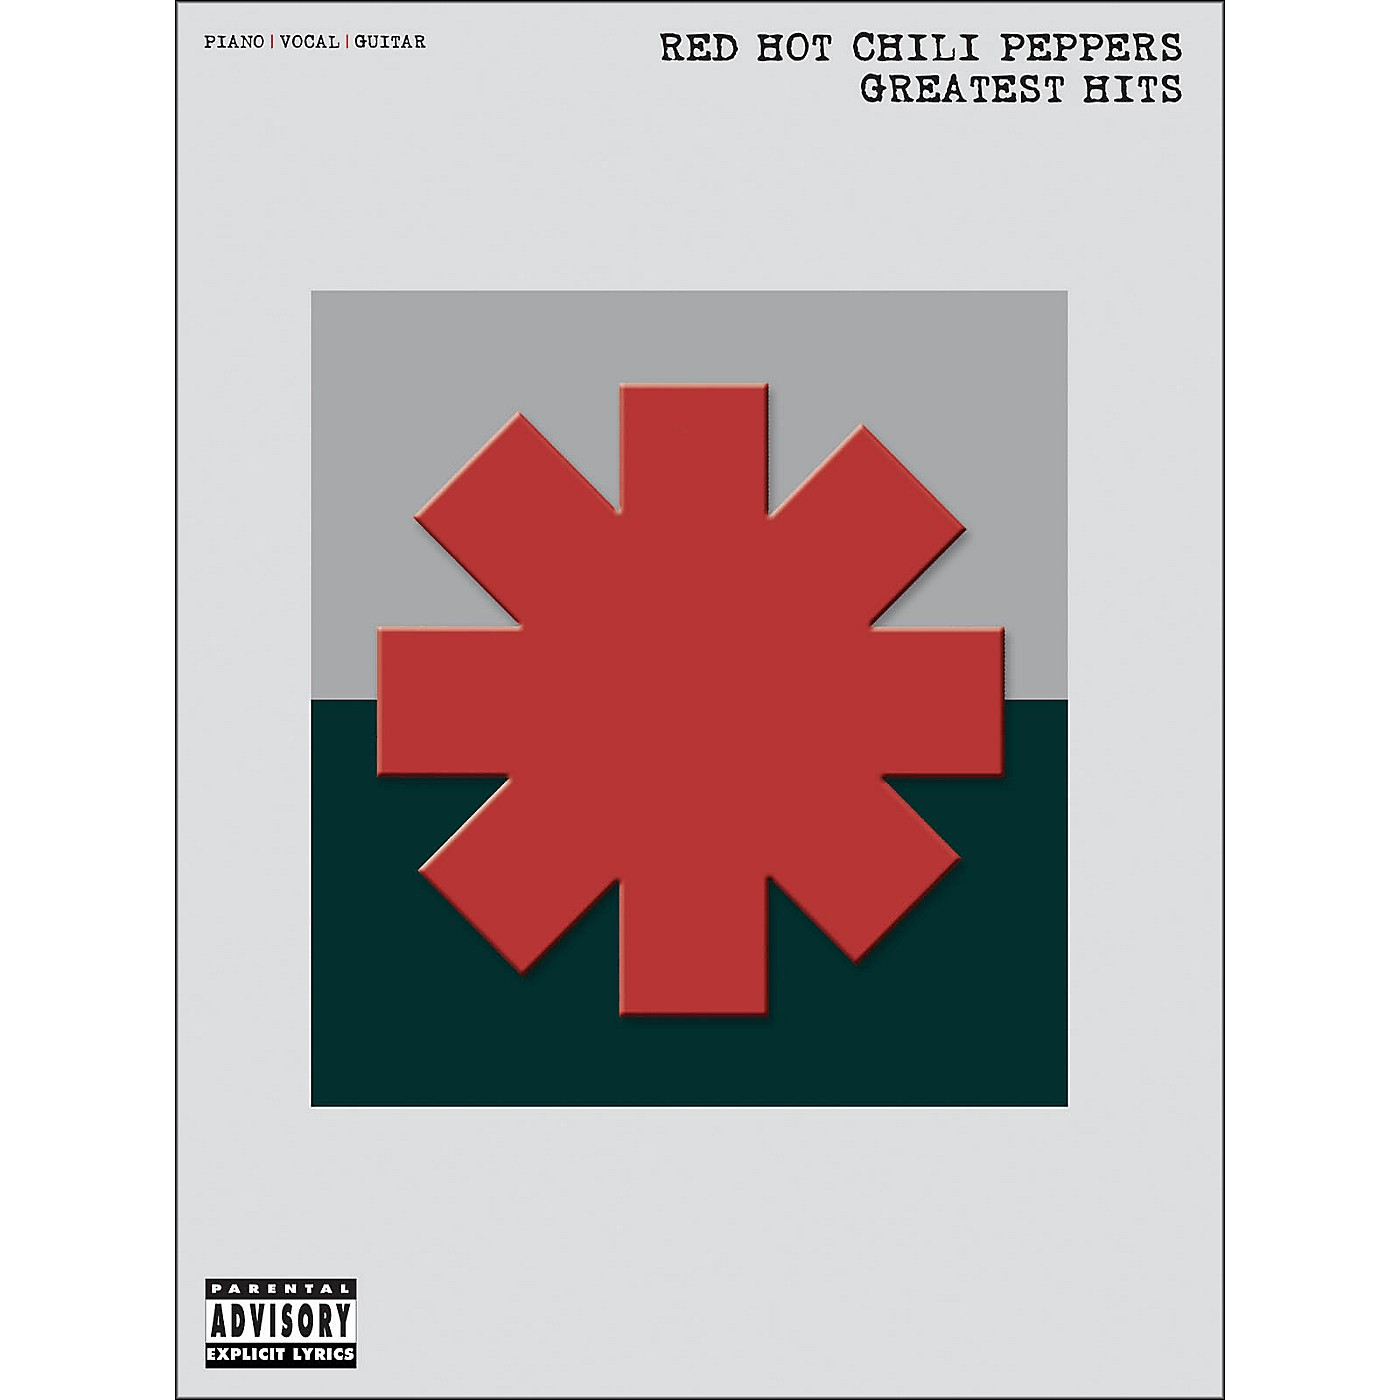 Hal Leonard Red Hot Chili Peppers - Greatest Hits arranged for piano, vocal, and guitar (P/V/G) thumbnail